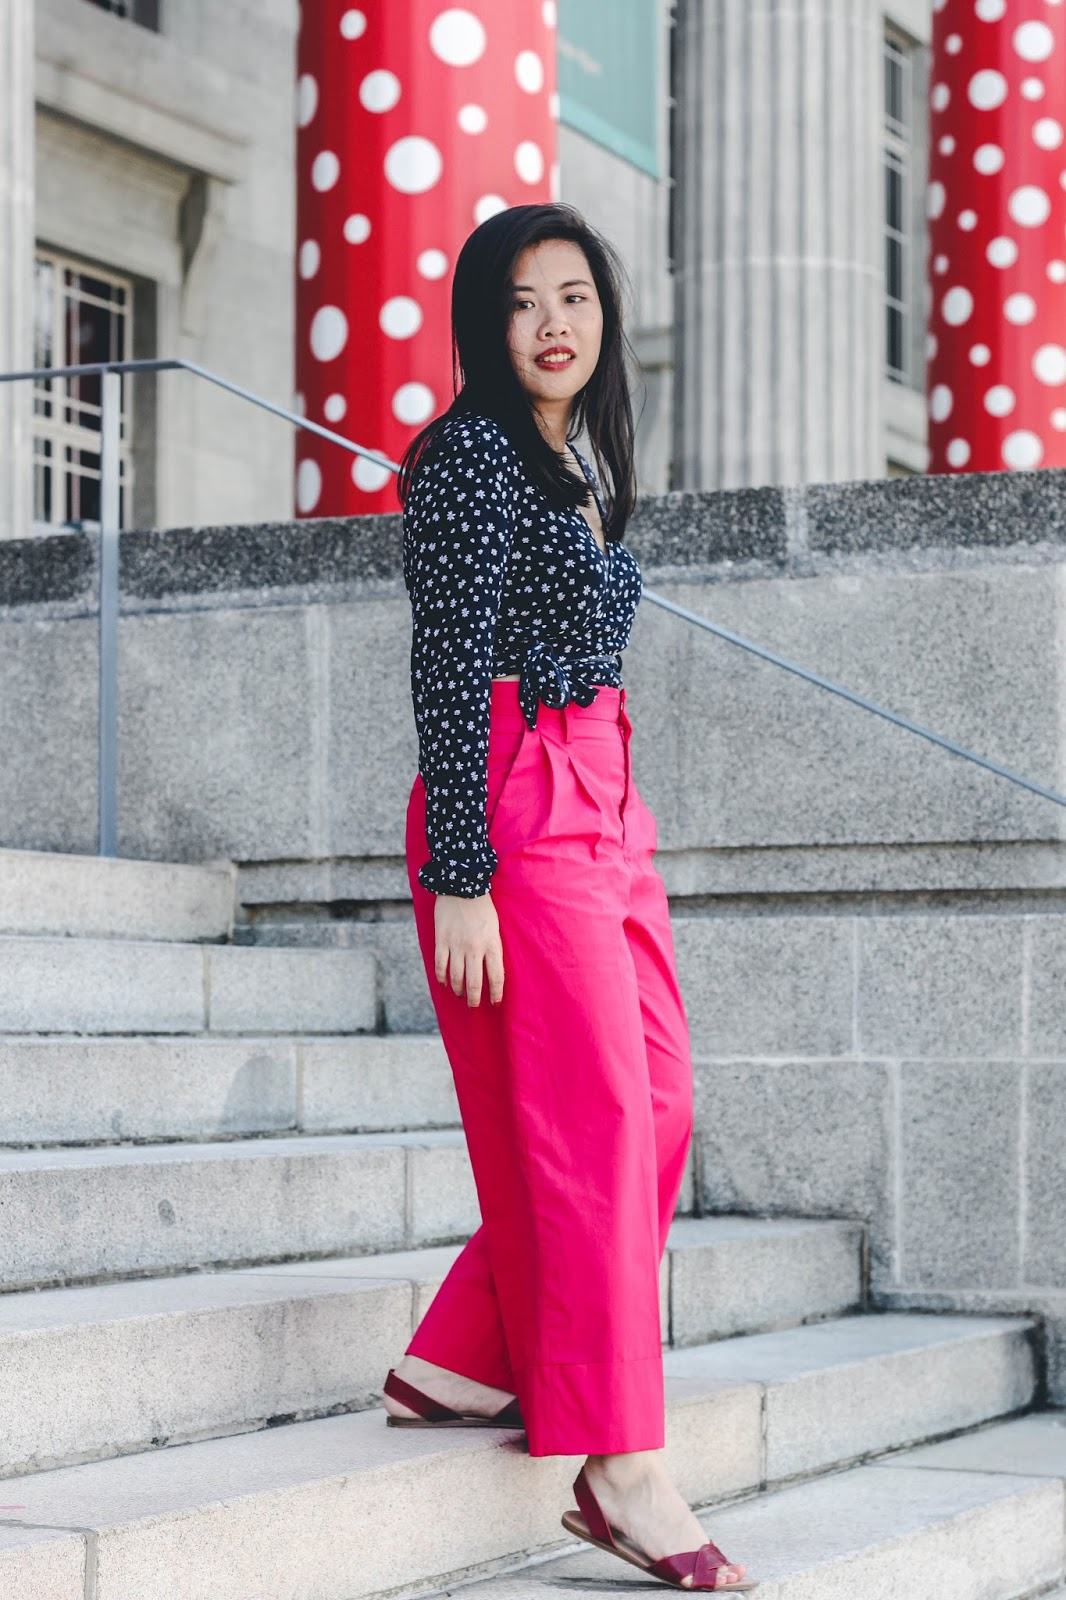 singapore blogger photographer look book style outfit stylist street photograph wiwt ootd stylexstyle pink fuchsia red